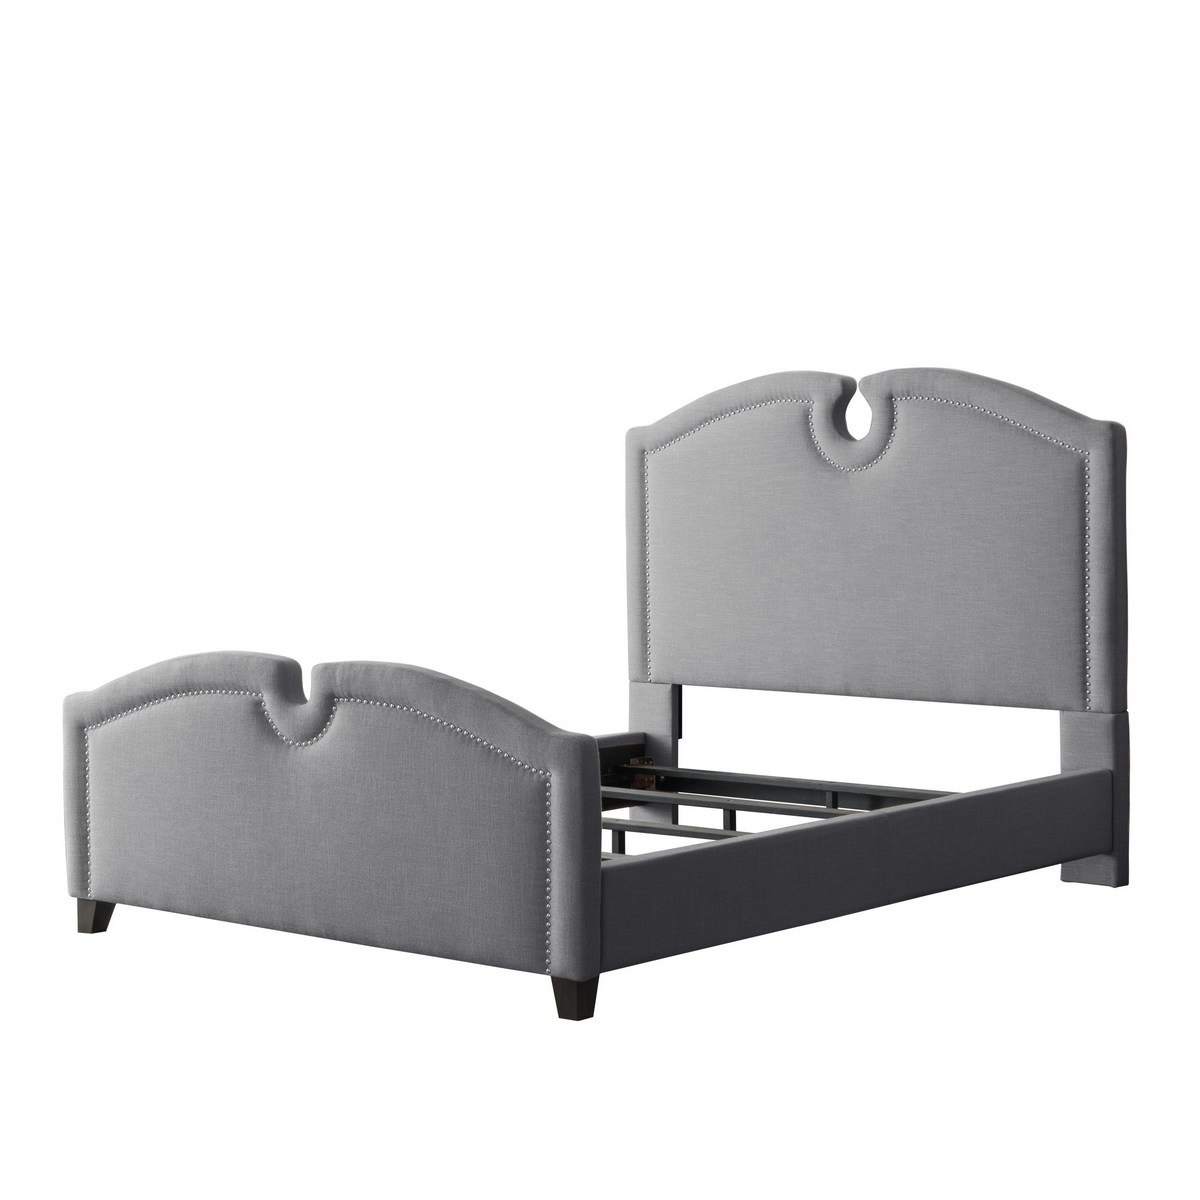 Corliving Furniture Bed Top Curved Double Photo